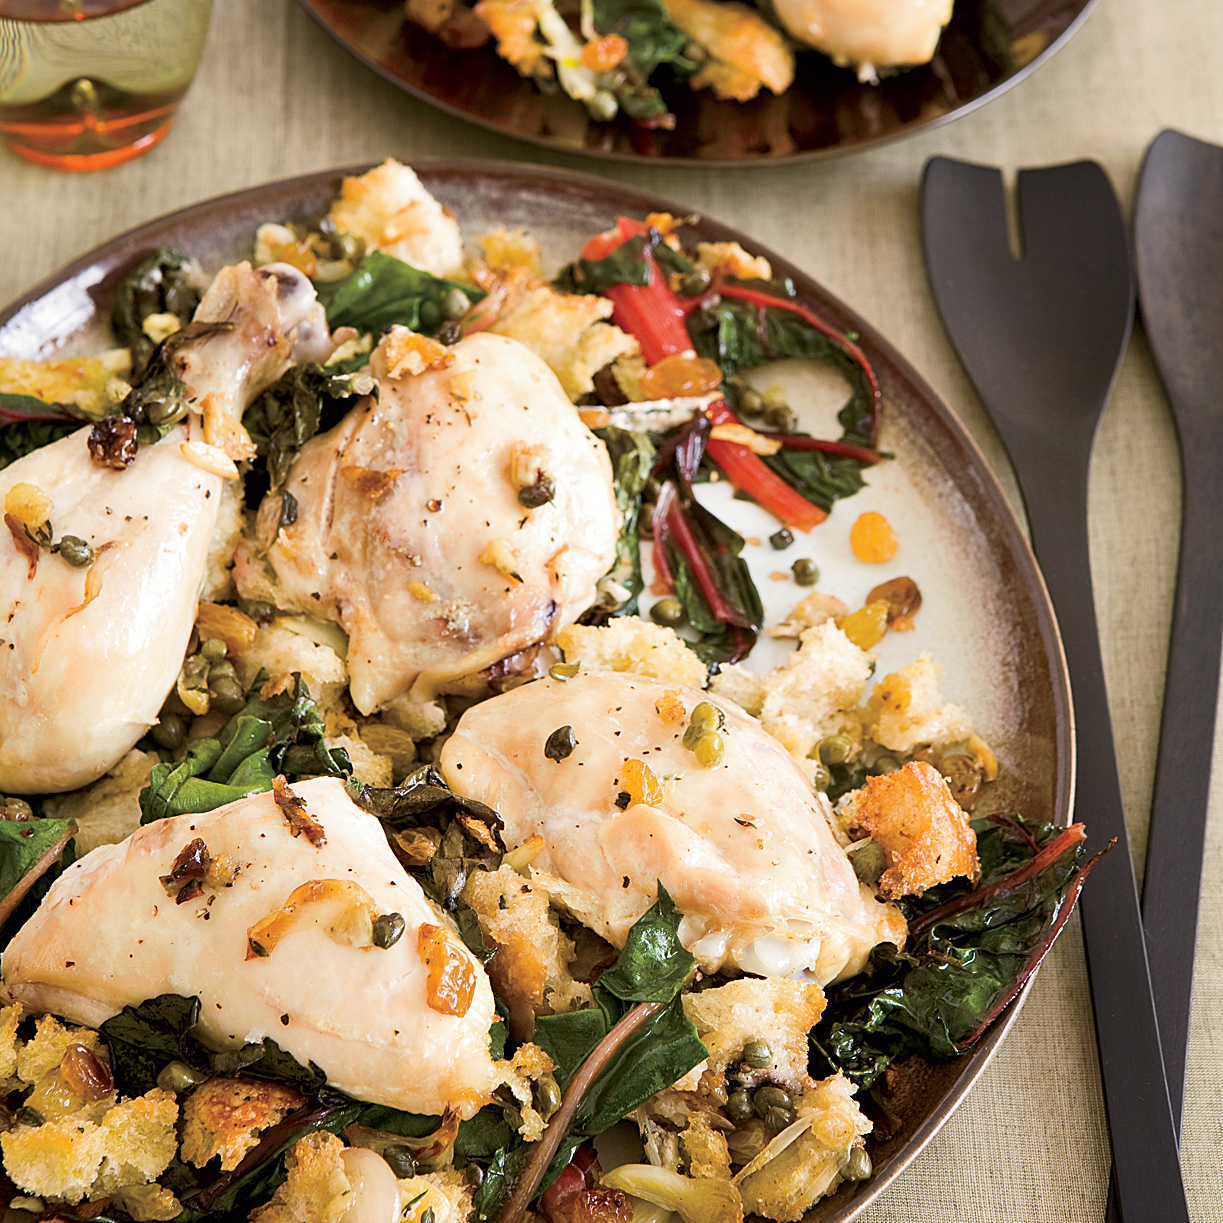 201012-r-chicken-bread-swiss-chard.jpg